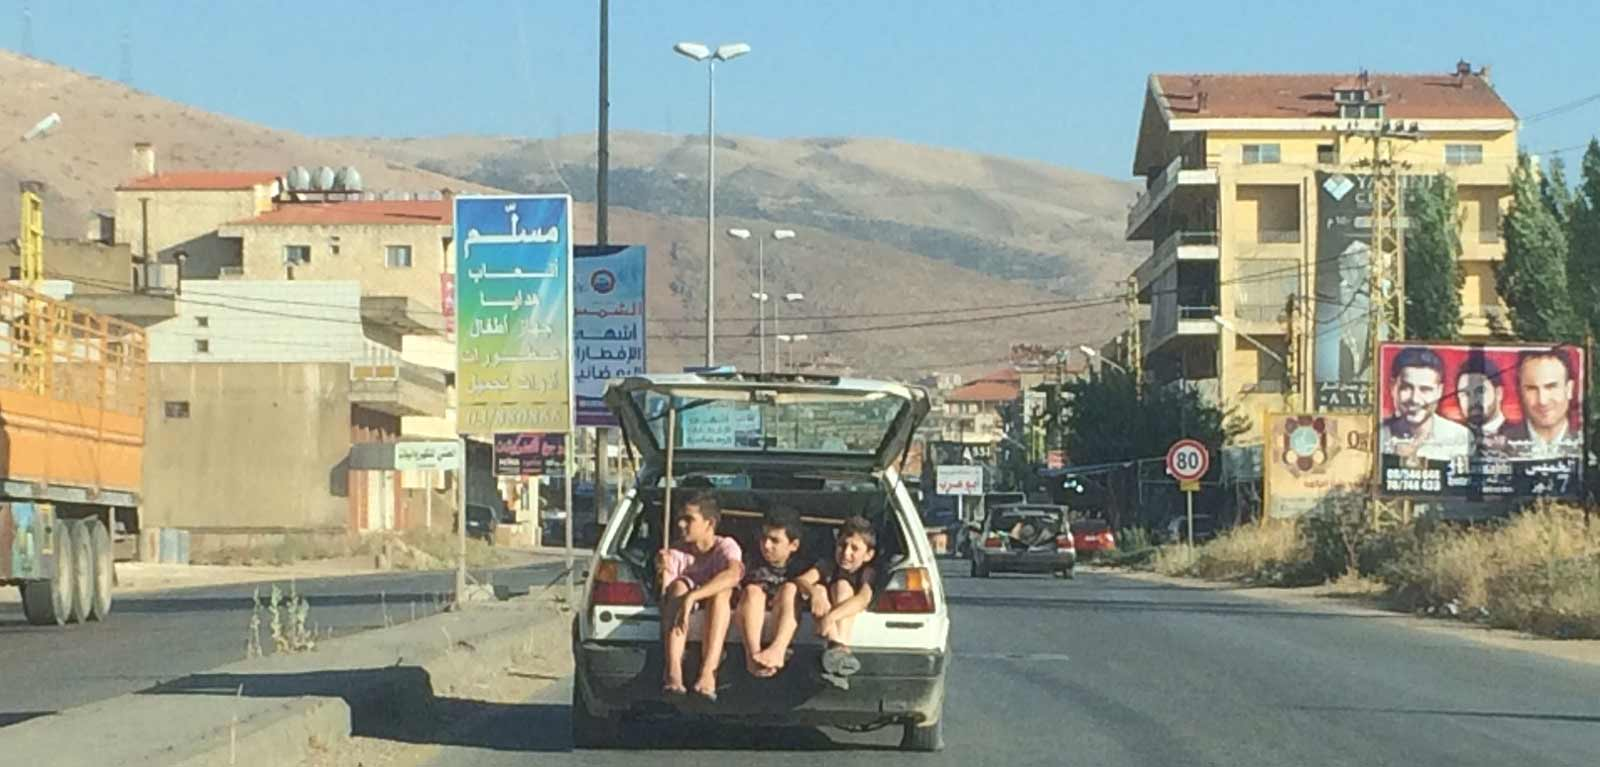 Three children sitting in the open boot of a car in a middle eastern town